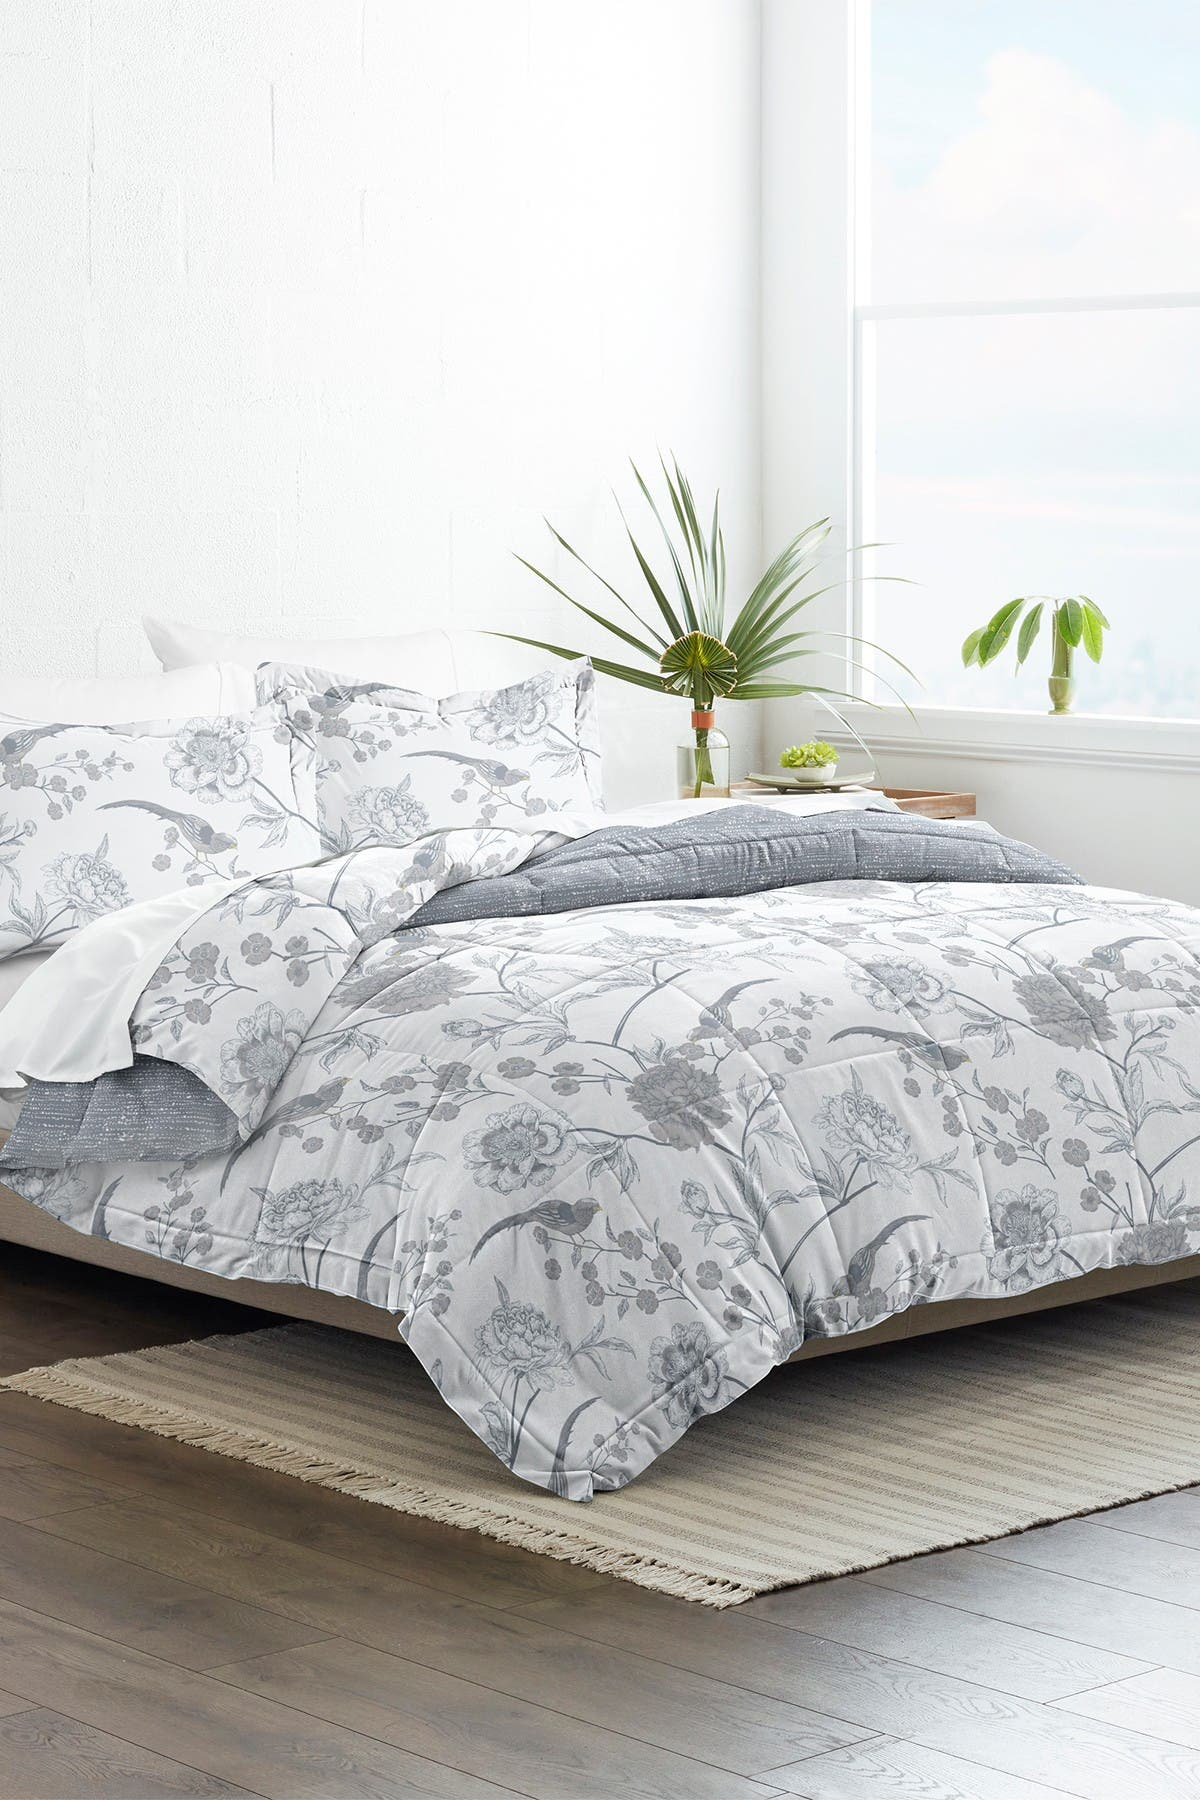 Image of IENJOY HOME Home Collection Premium Down Alternative Molly Botanicals Reversible King/California King Comforter 3-Piece Set - Light Blue